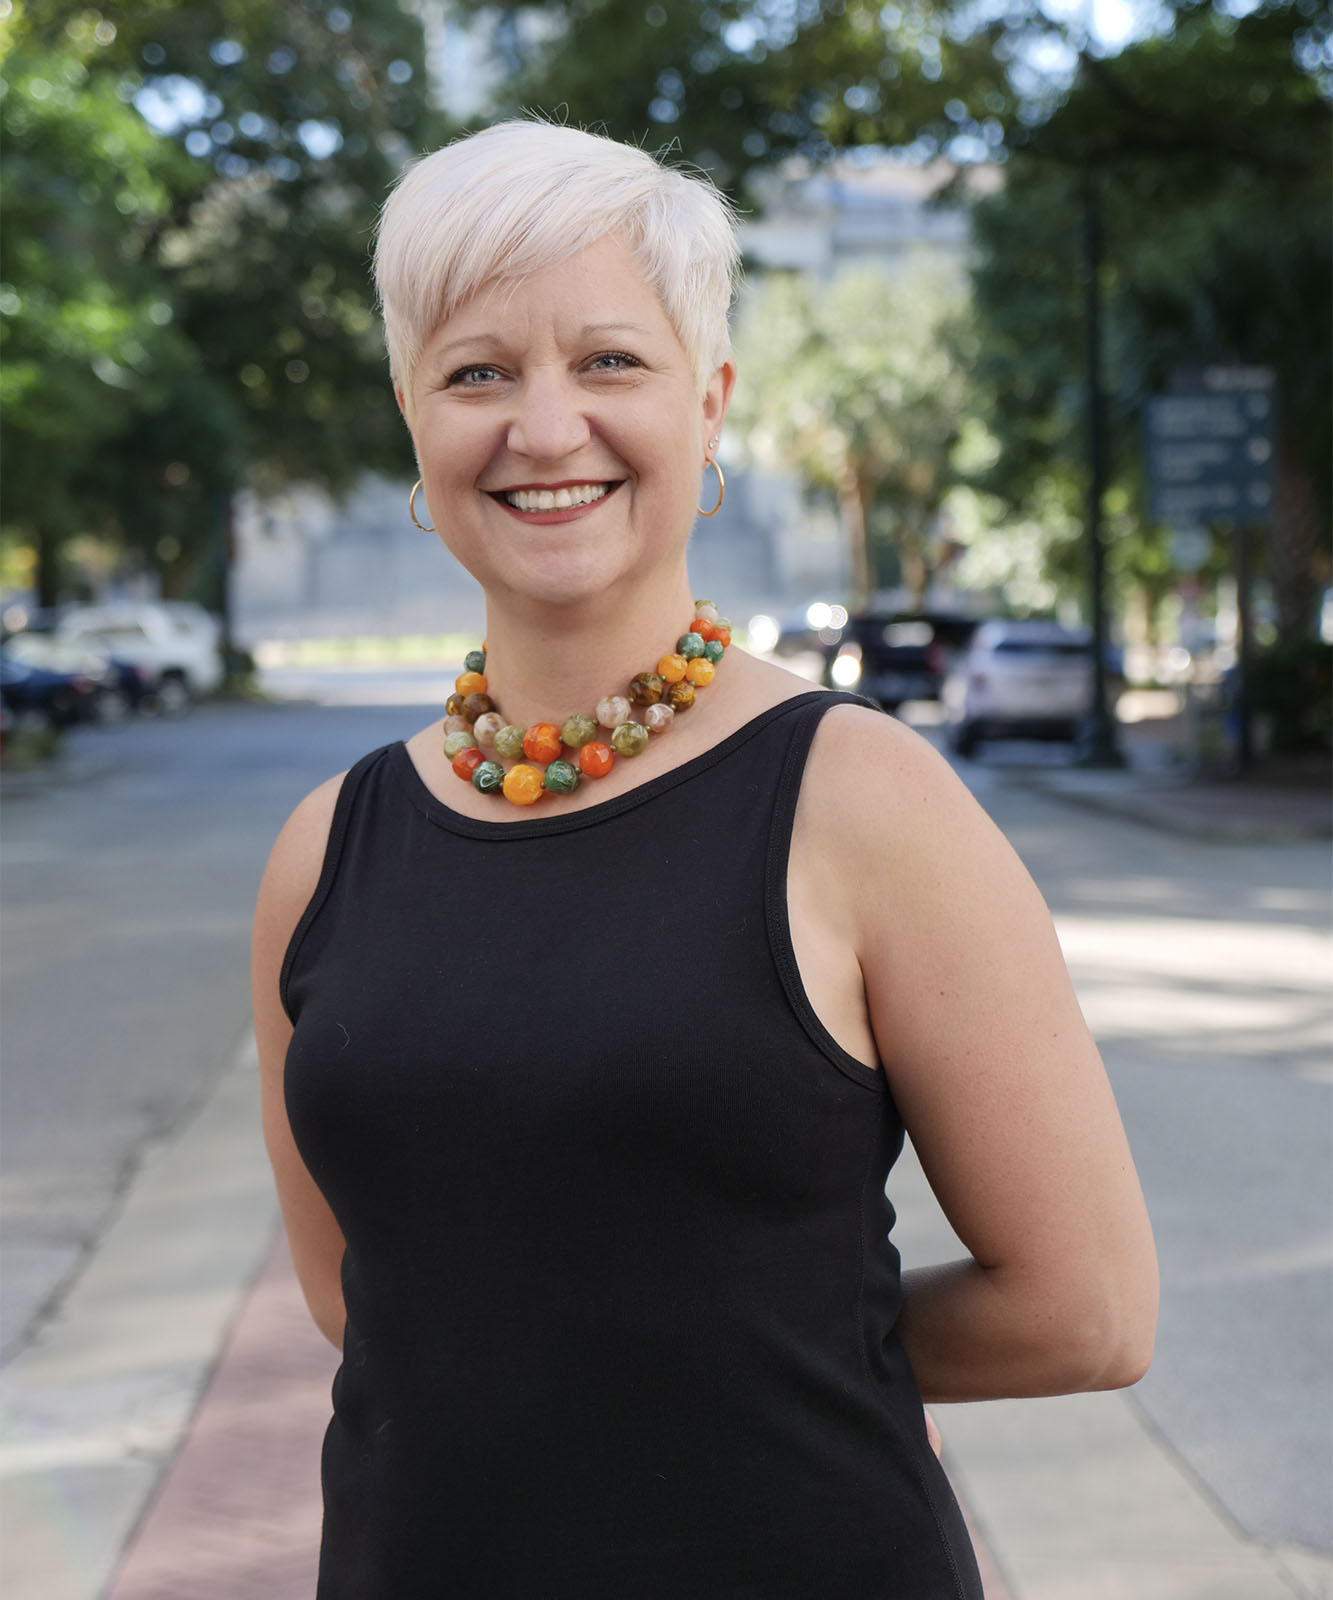 Jennifer Tausch is the Vice President of Creative at Rhodes Branding